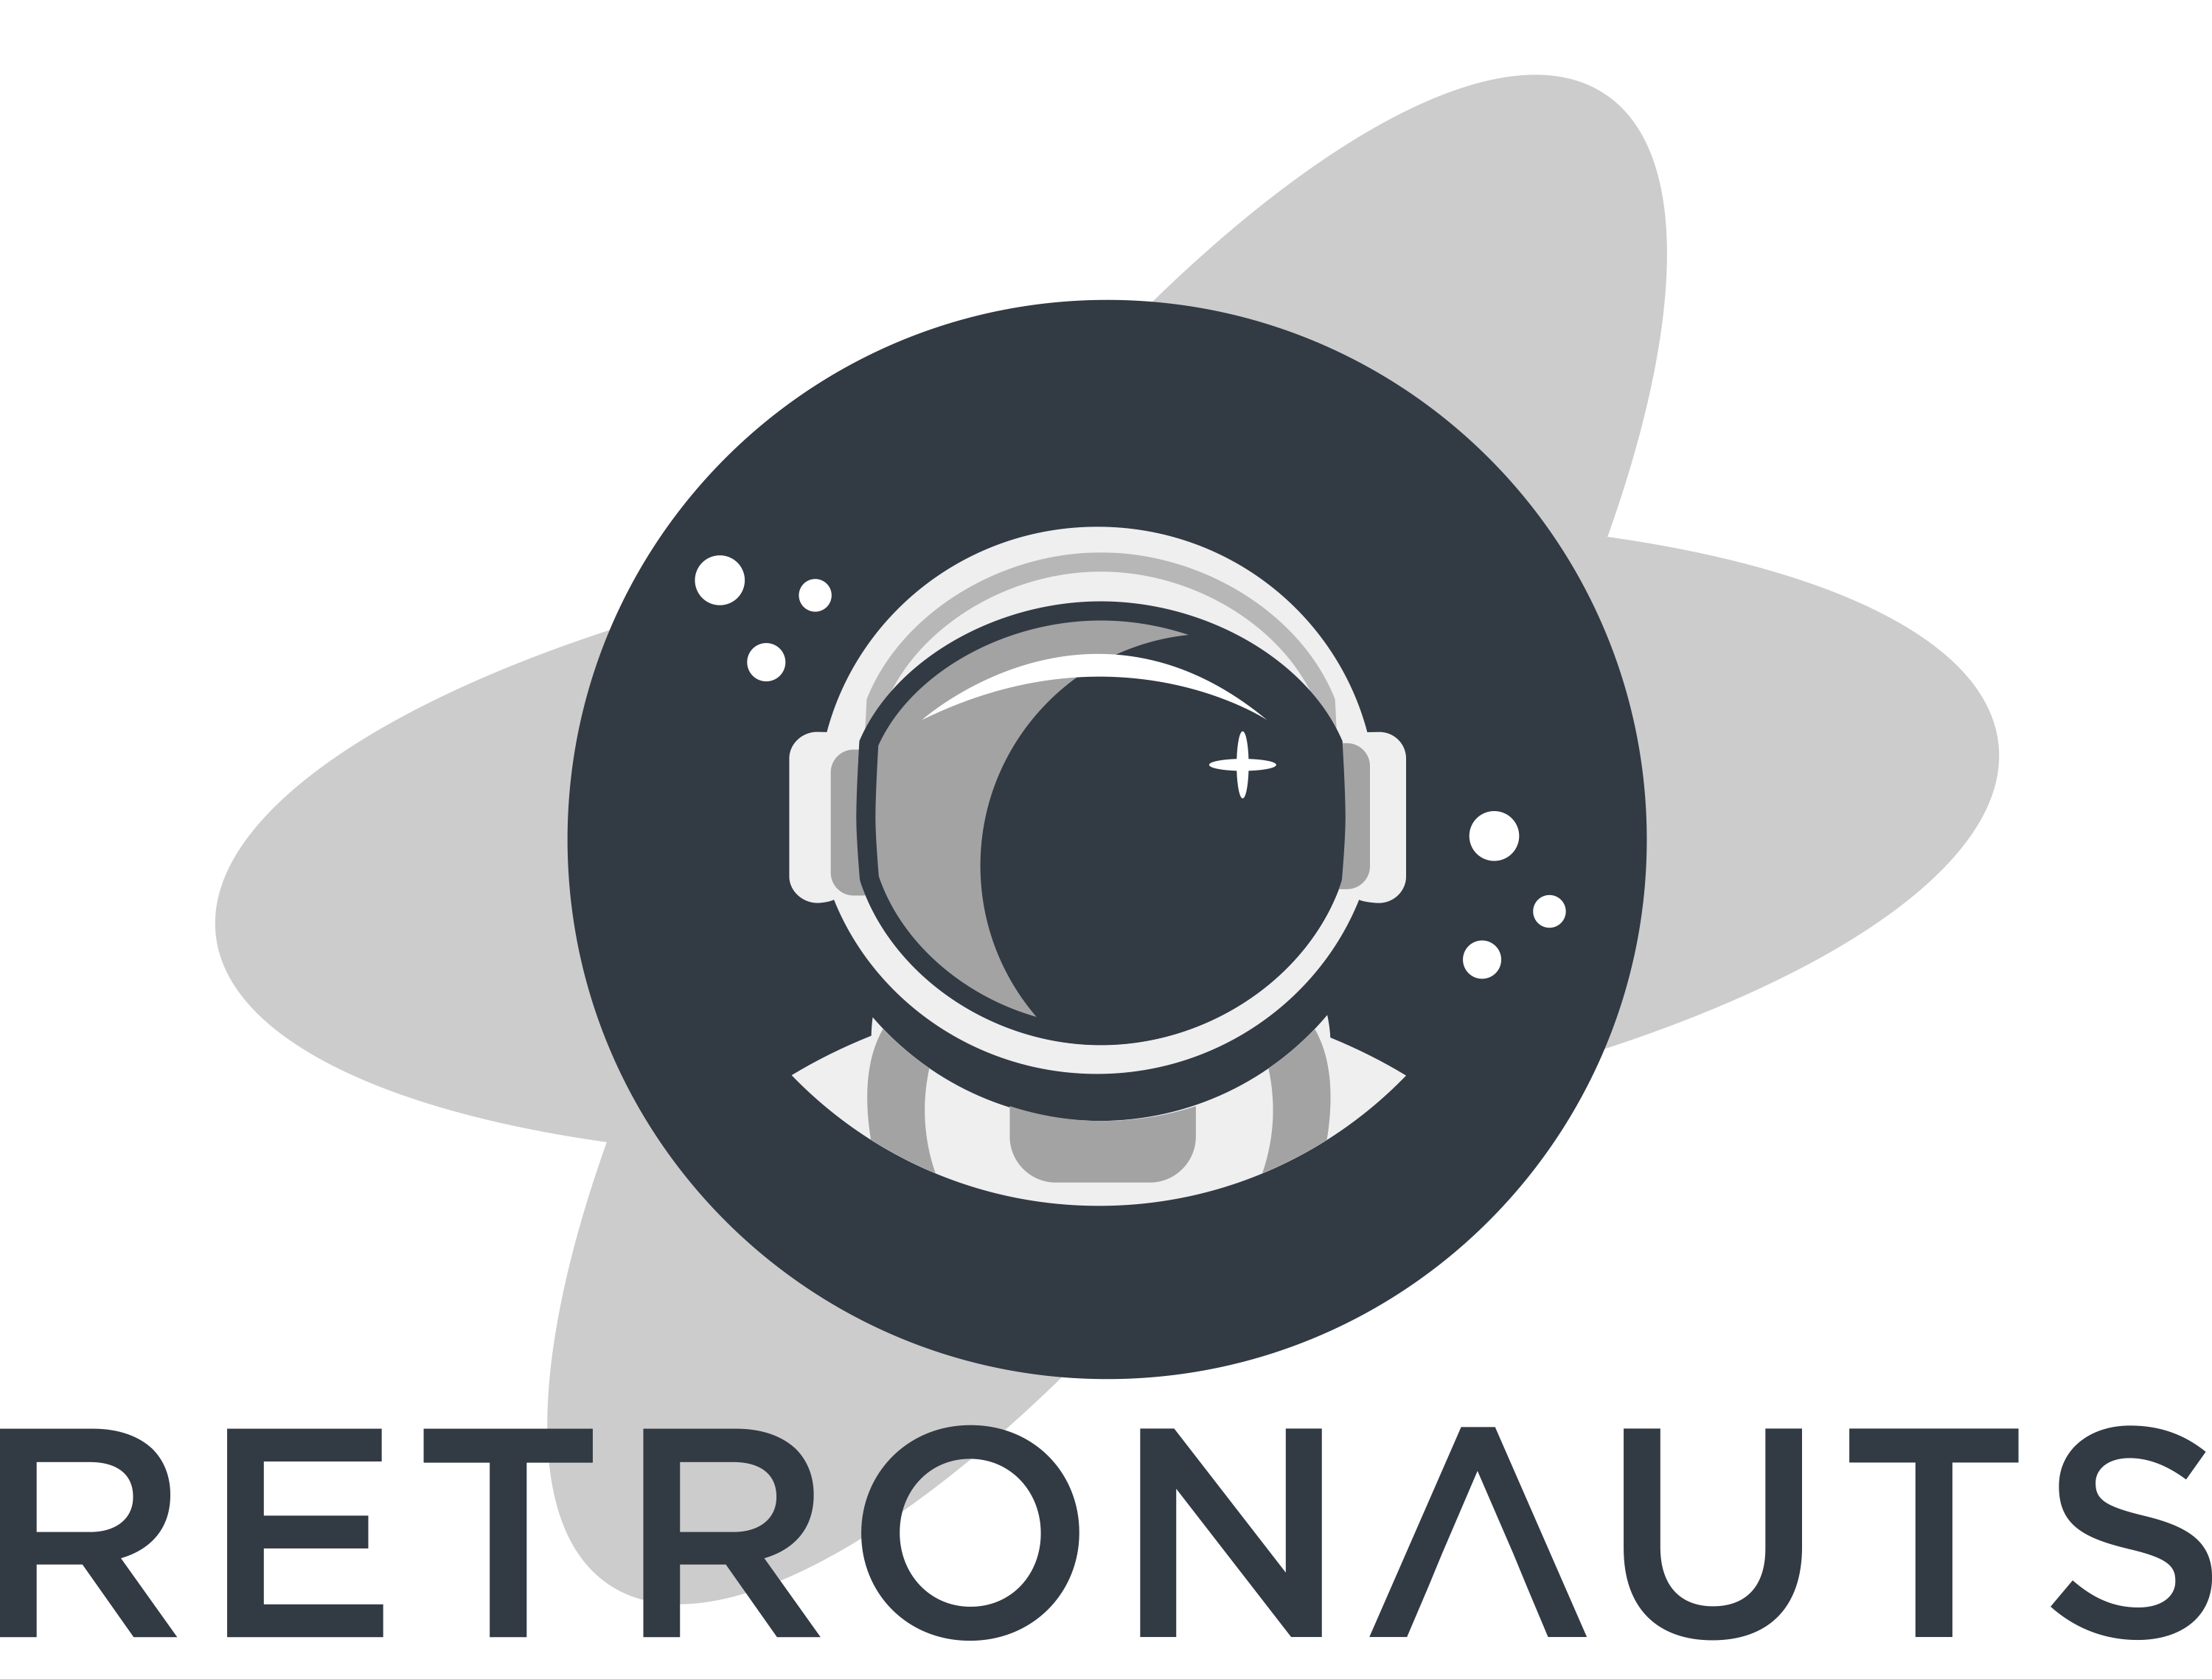 Retronauts Episode 220: A Podcast About Podcasting